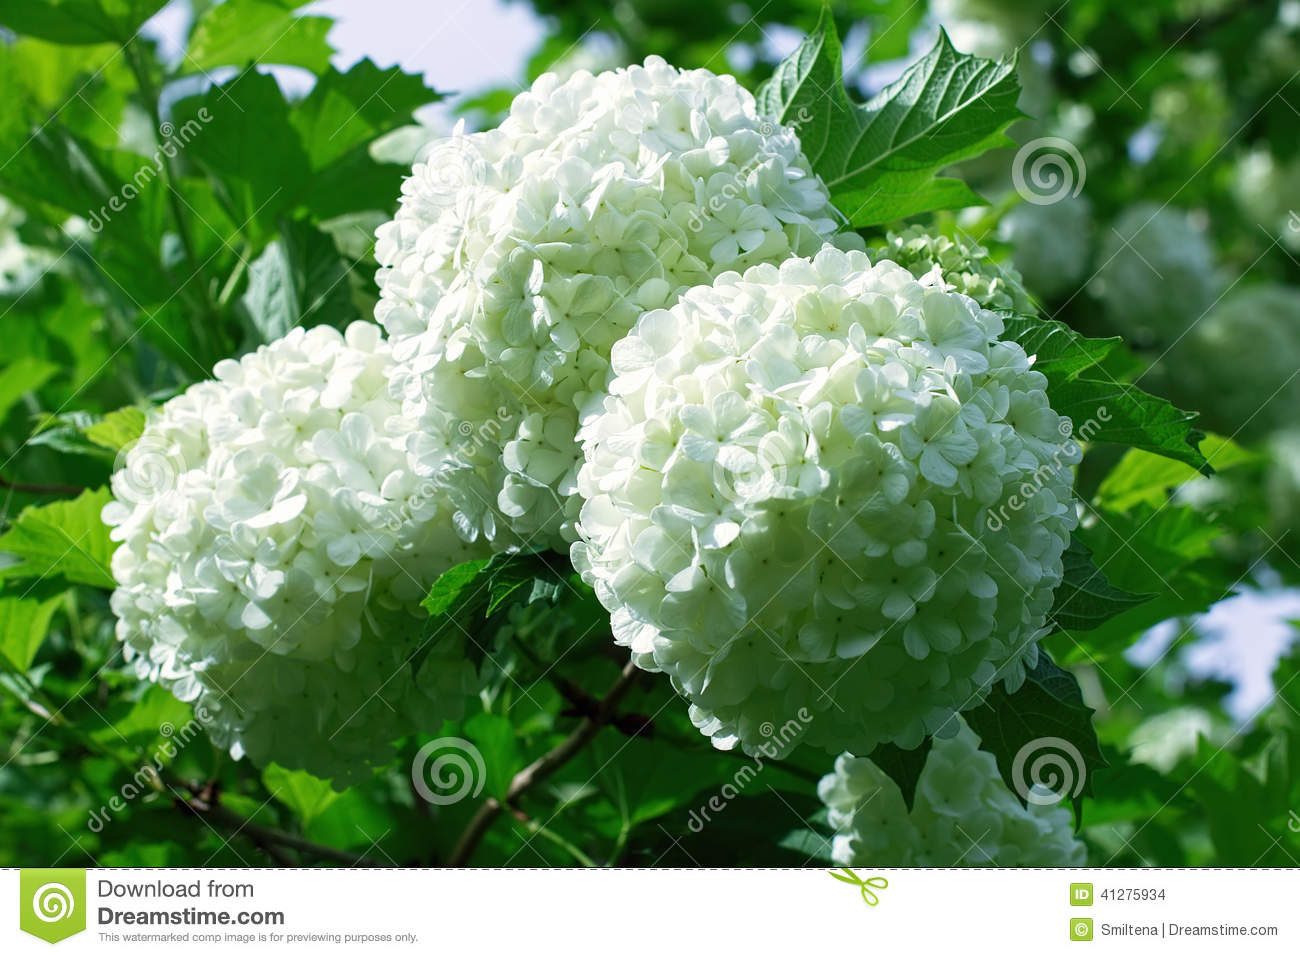 boules des fleurs blanches d 39 hortensia photo stock image du floraison vert 41275934. Black Bedroom Furniture Sets. Home Design Ideas